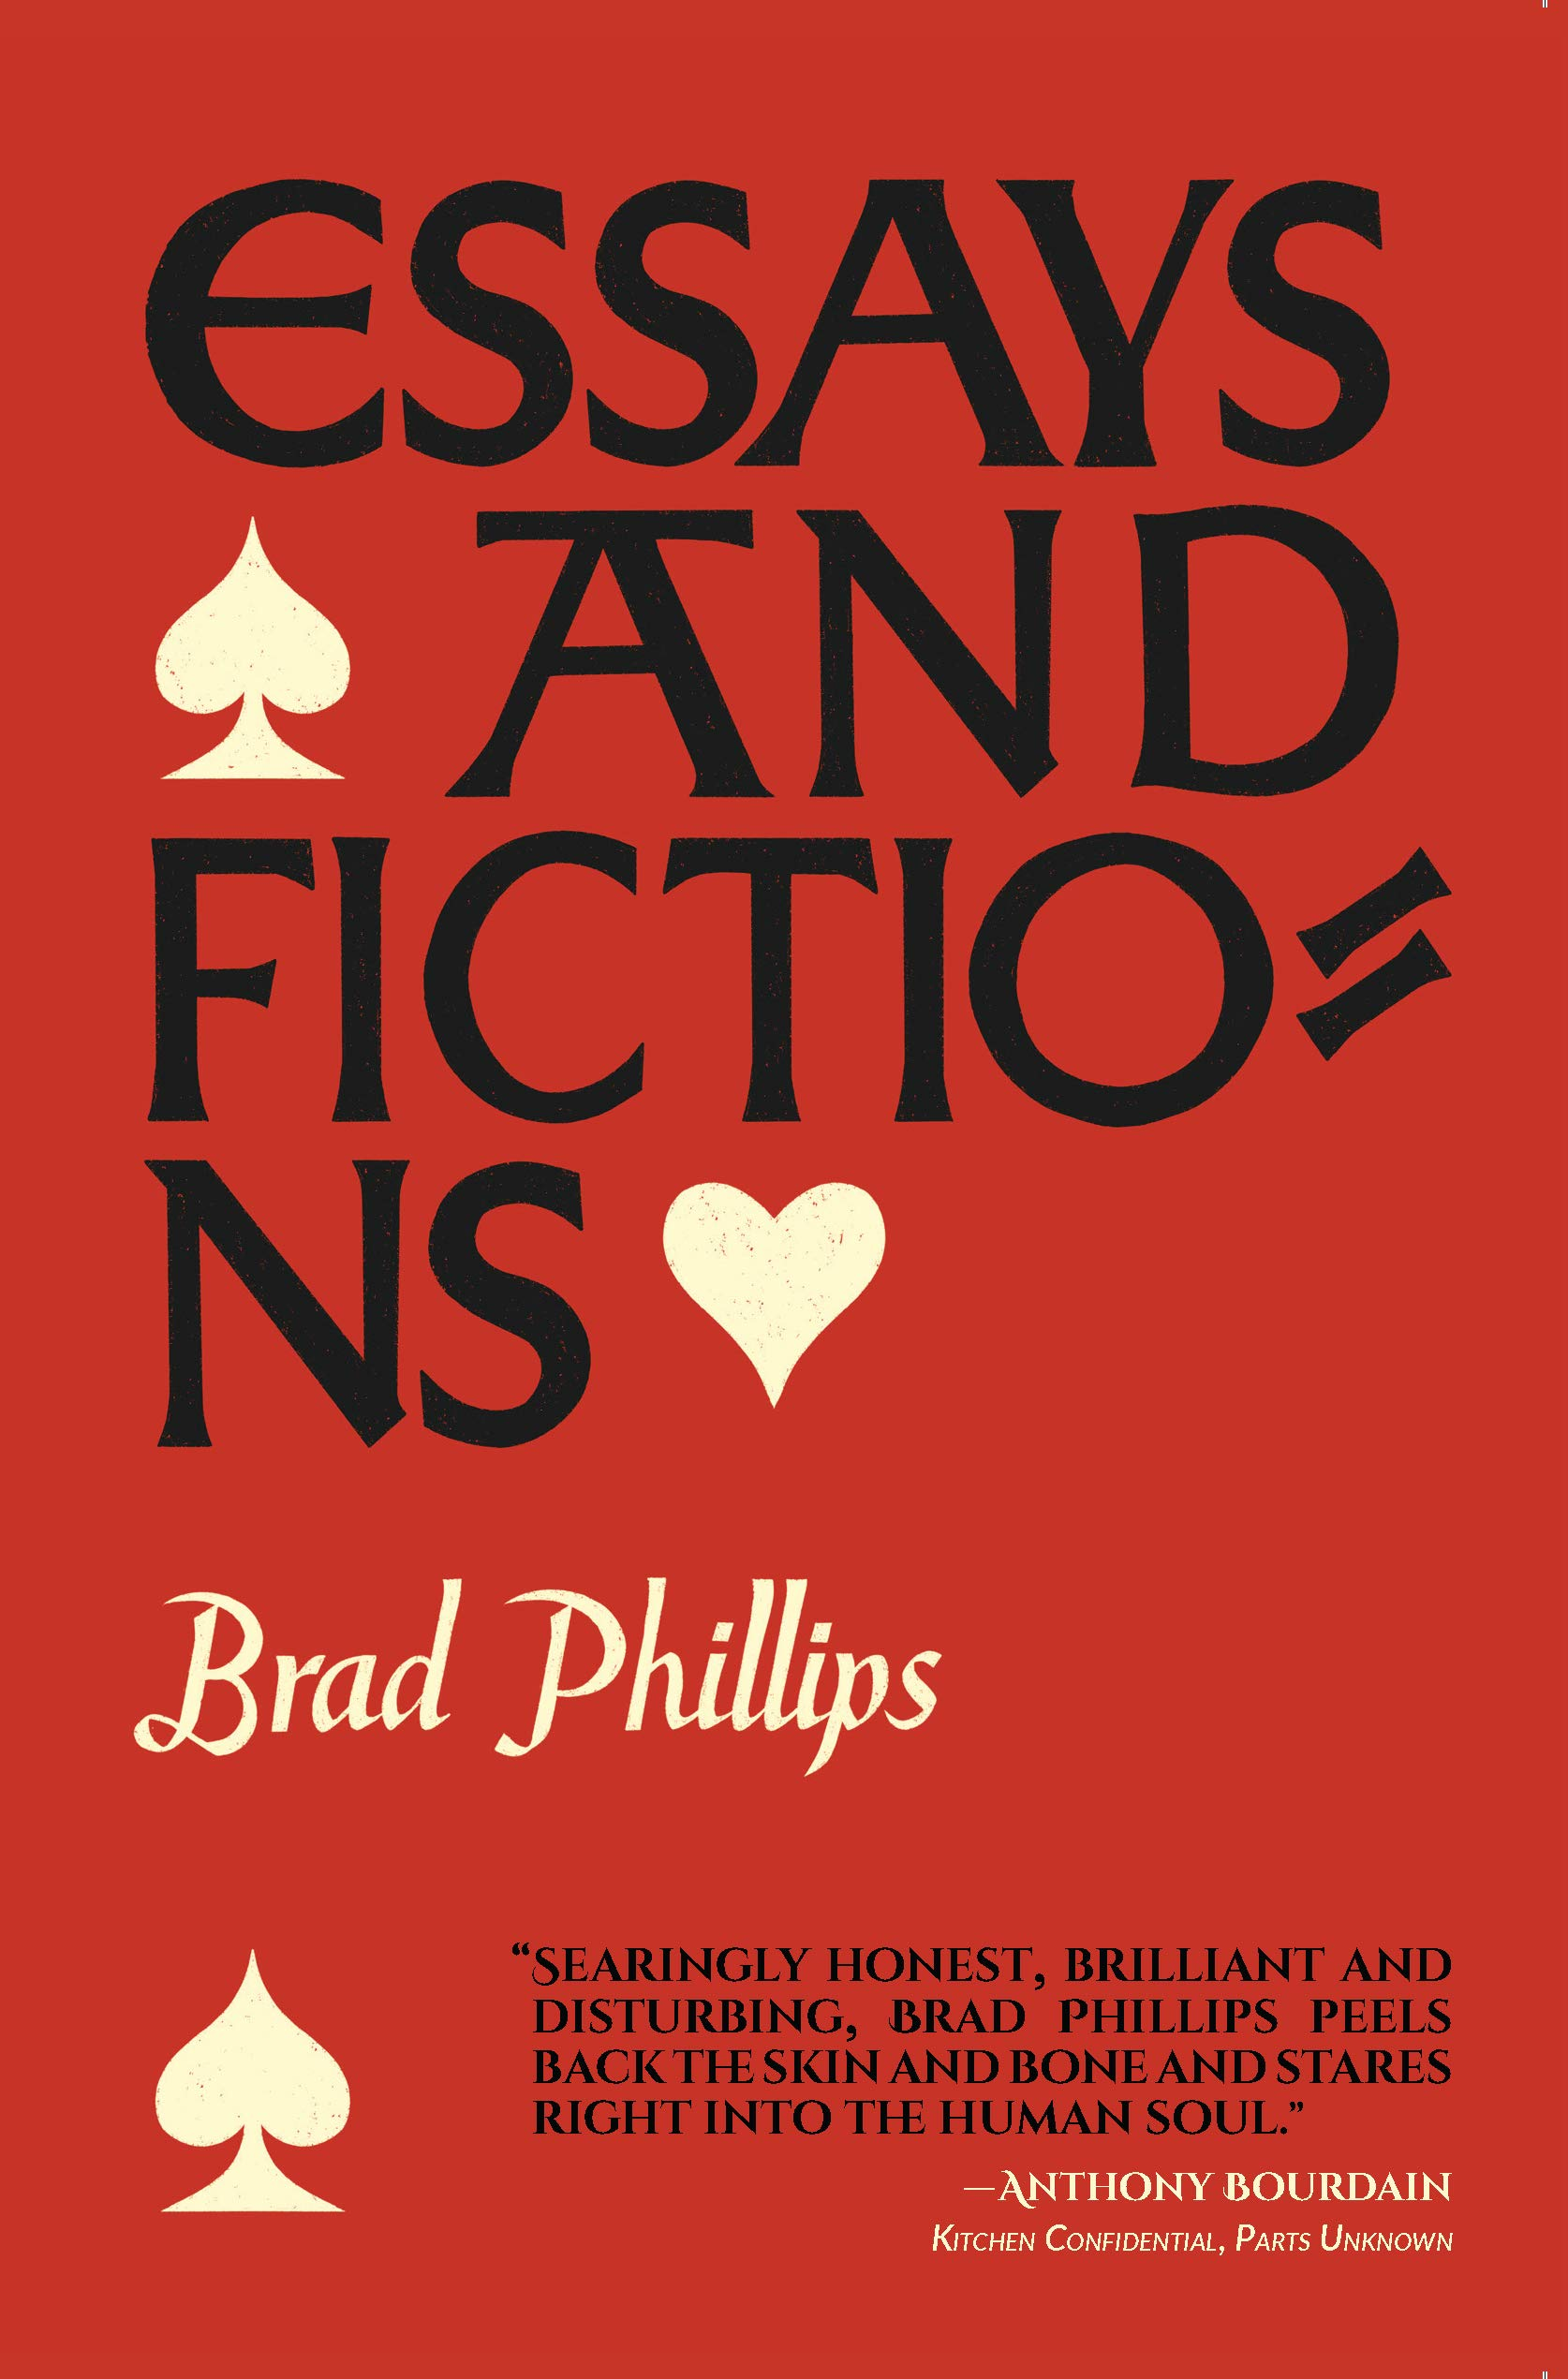 Image result for Brad Phillips, Essays and Fictions,